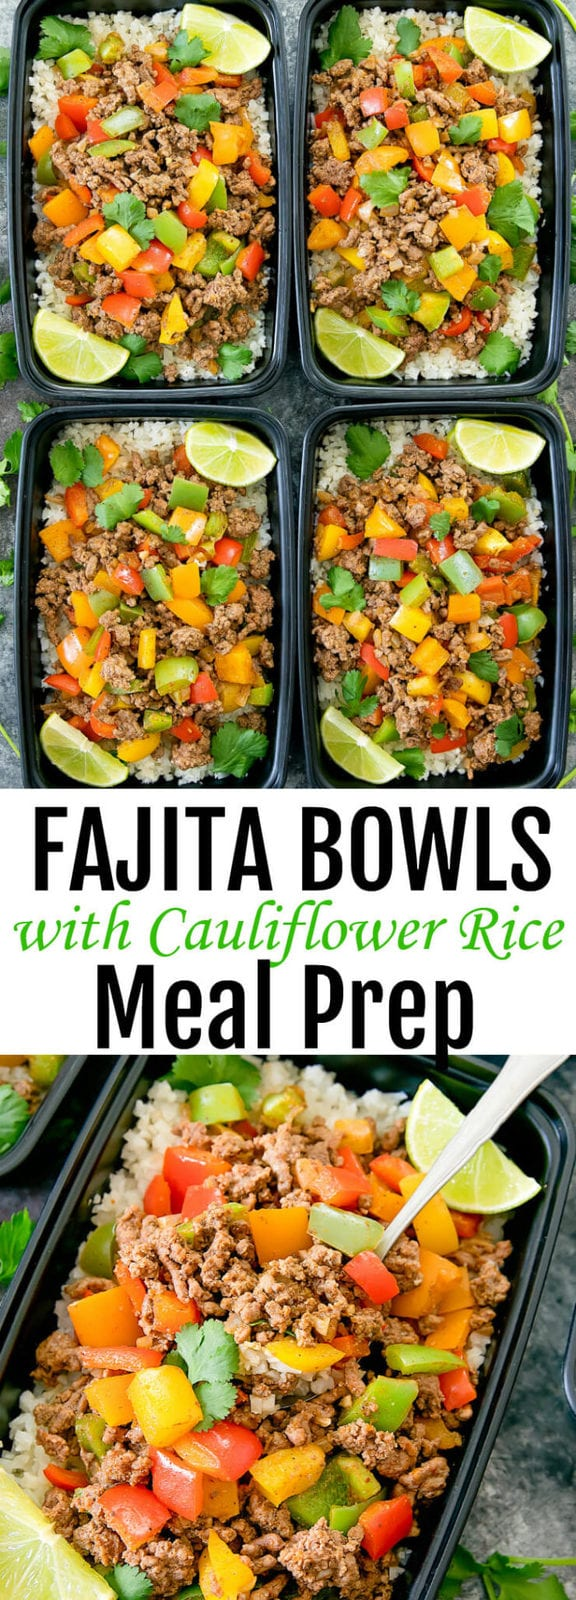 Fajita Bowls with Cauliflower Rice Meal Prep